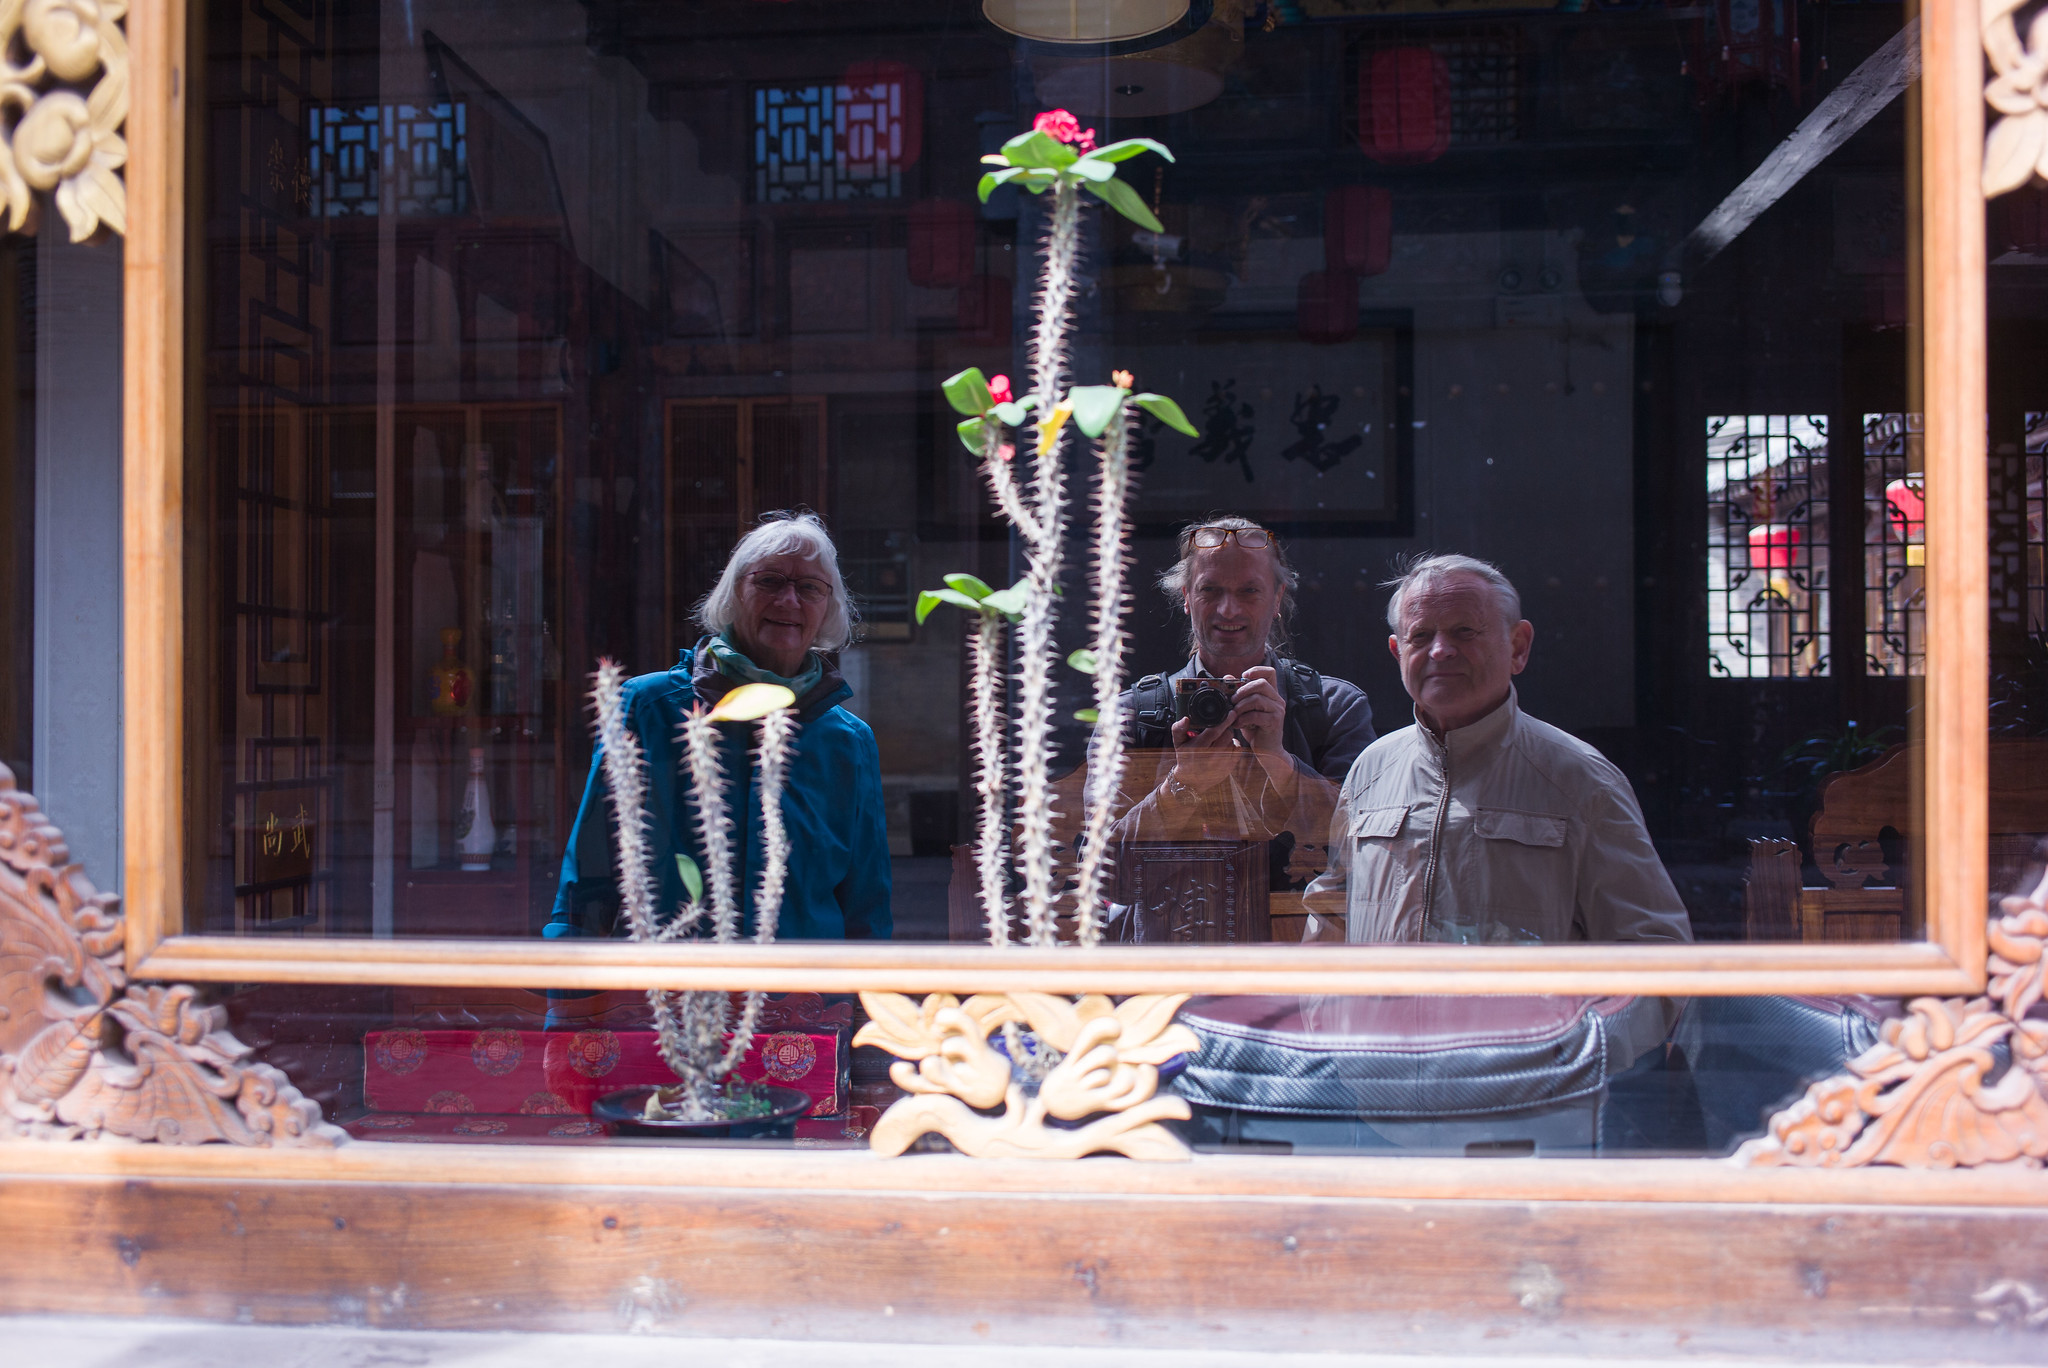 Utechts in Pingyao